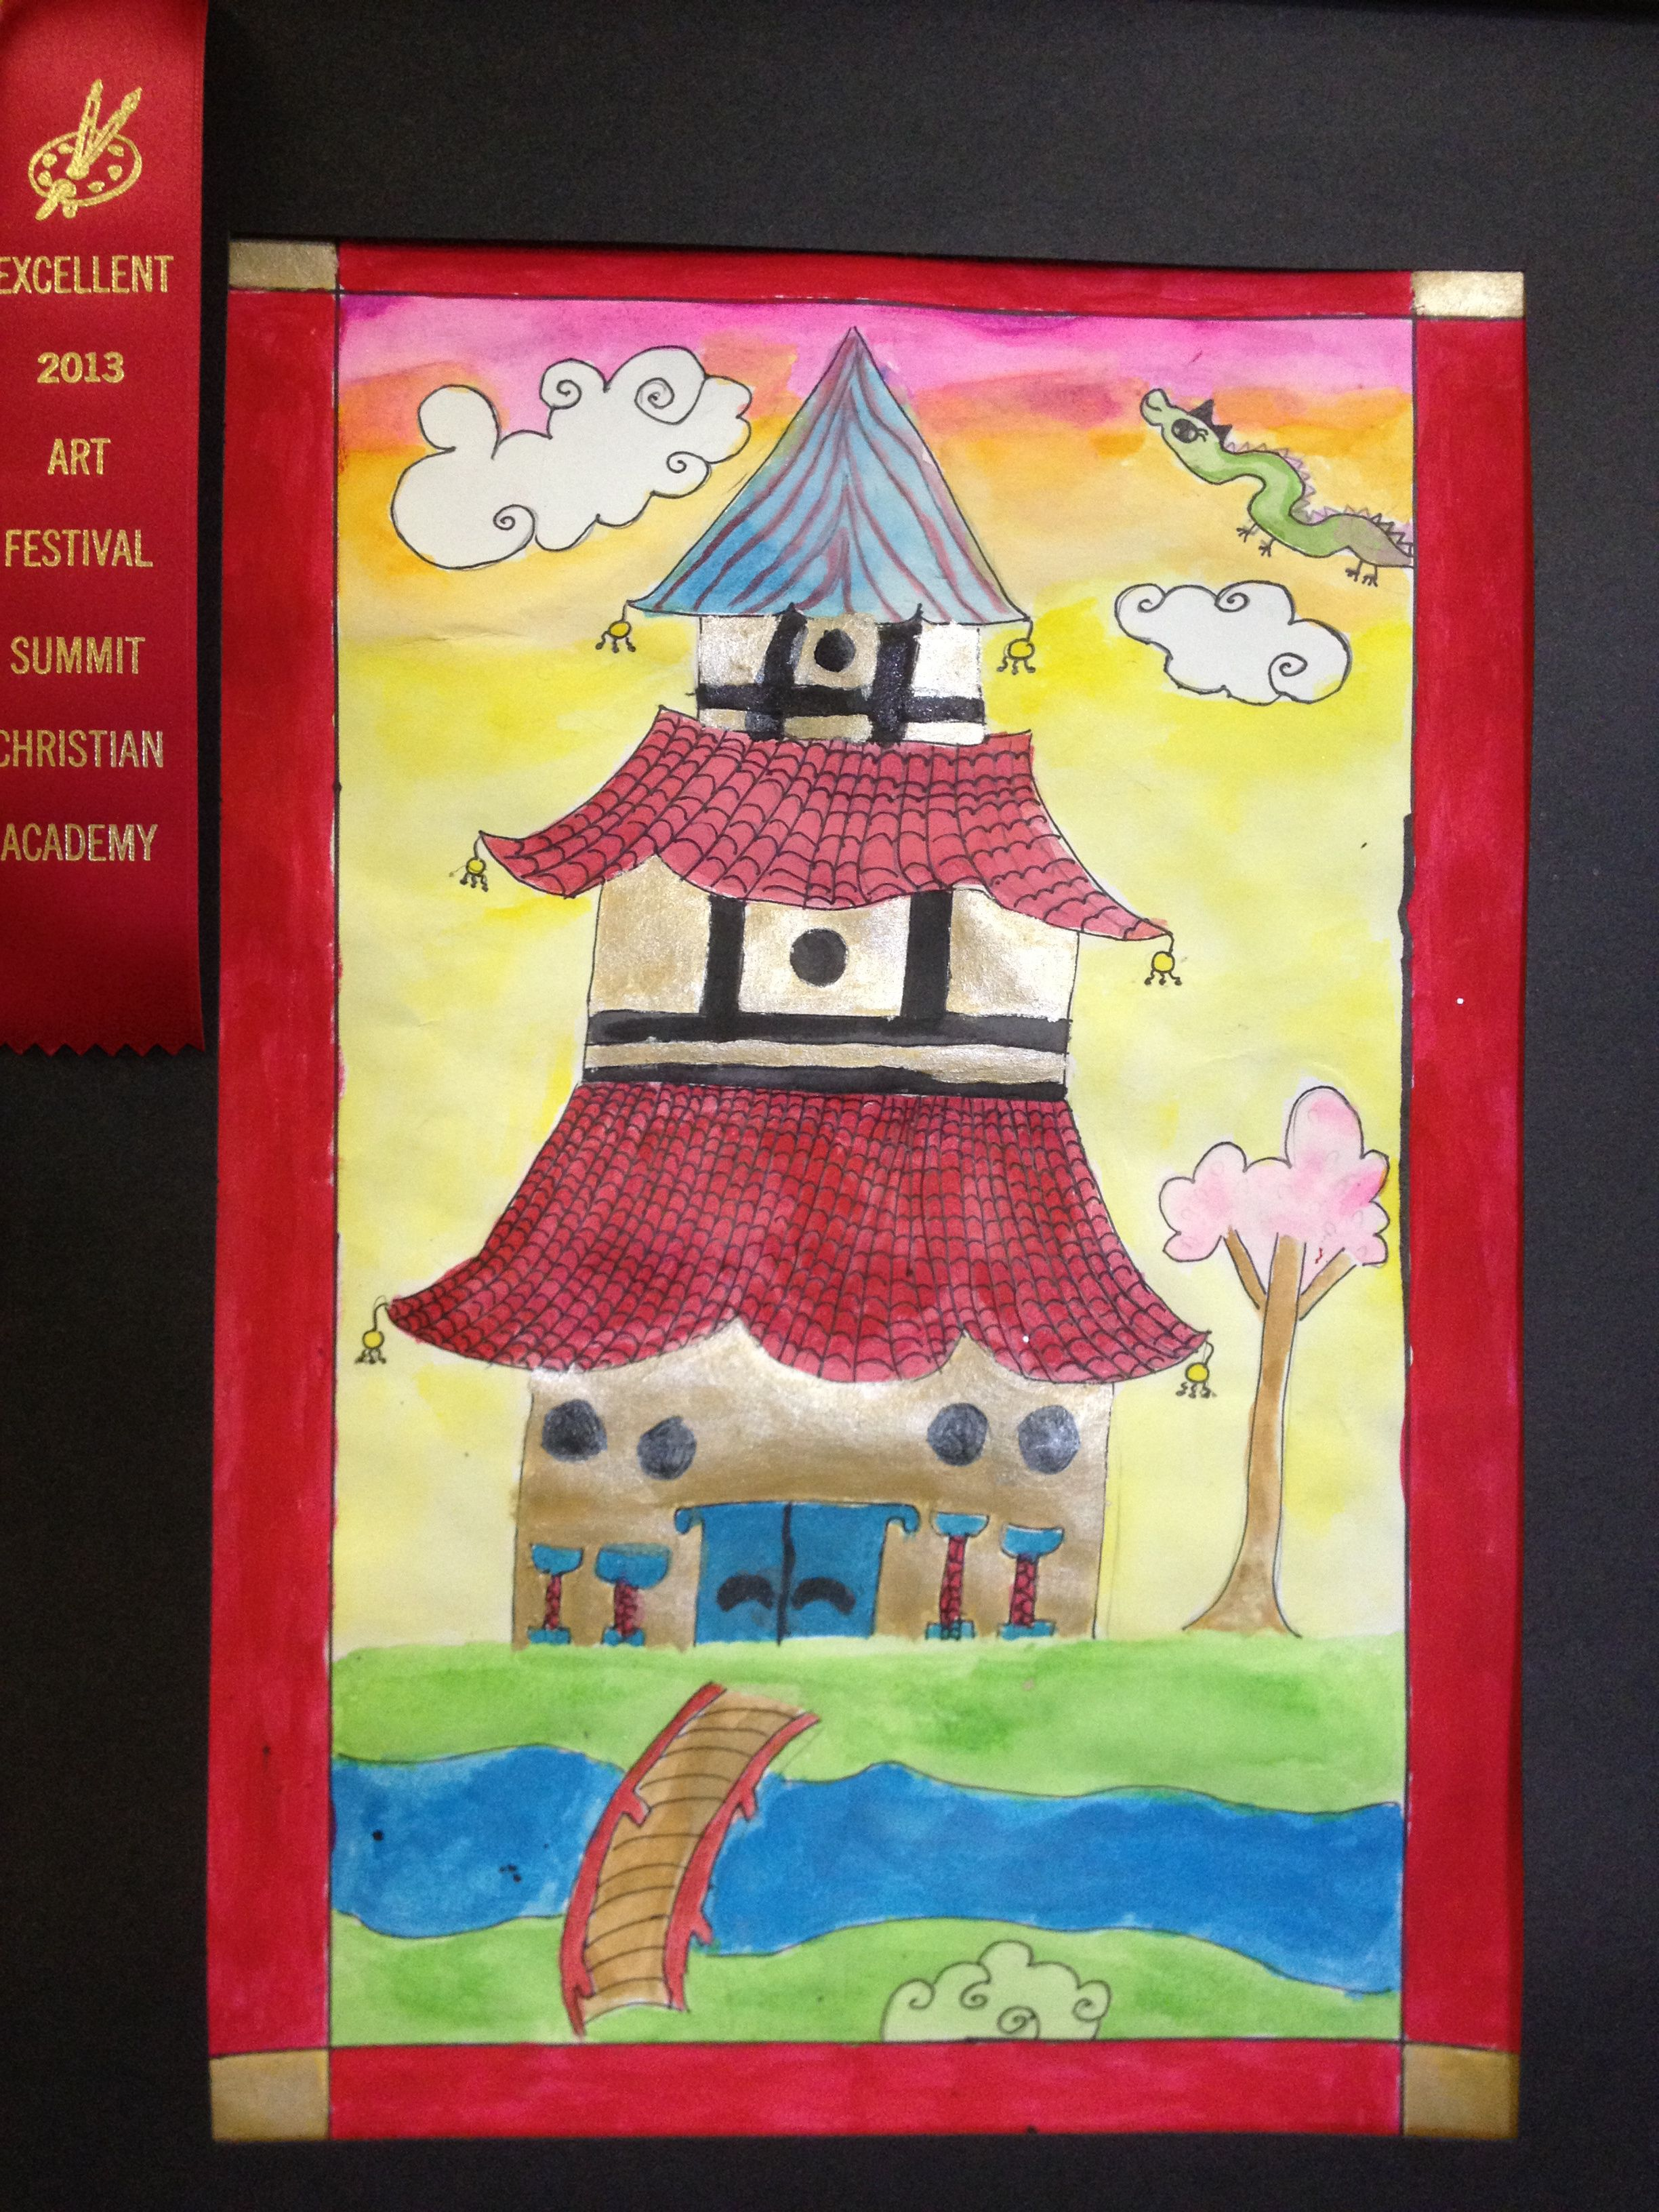 Pagoda Architecture Design Amp Painting Lesson